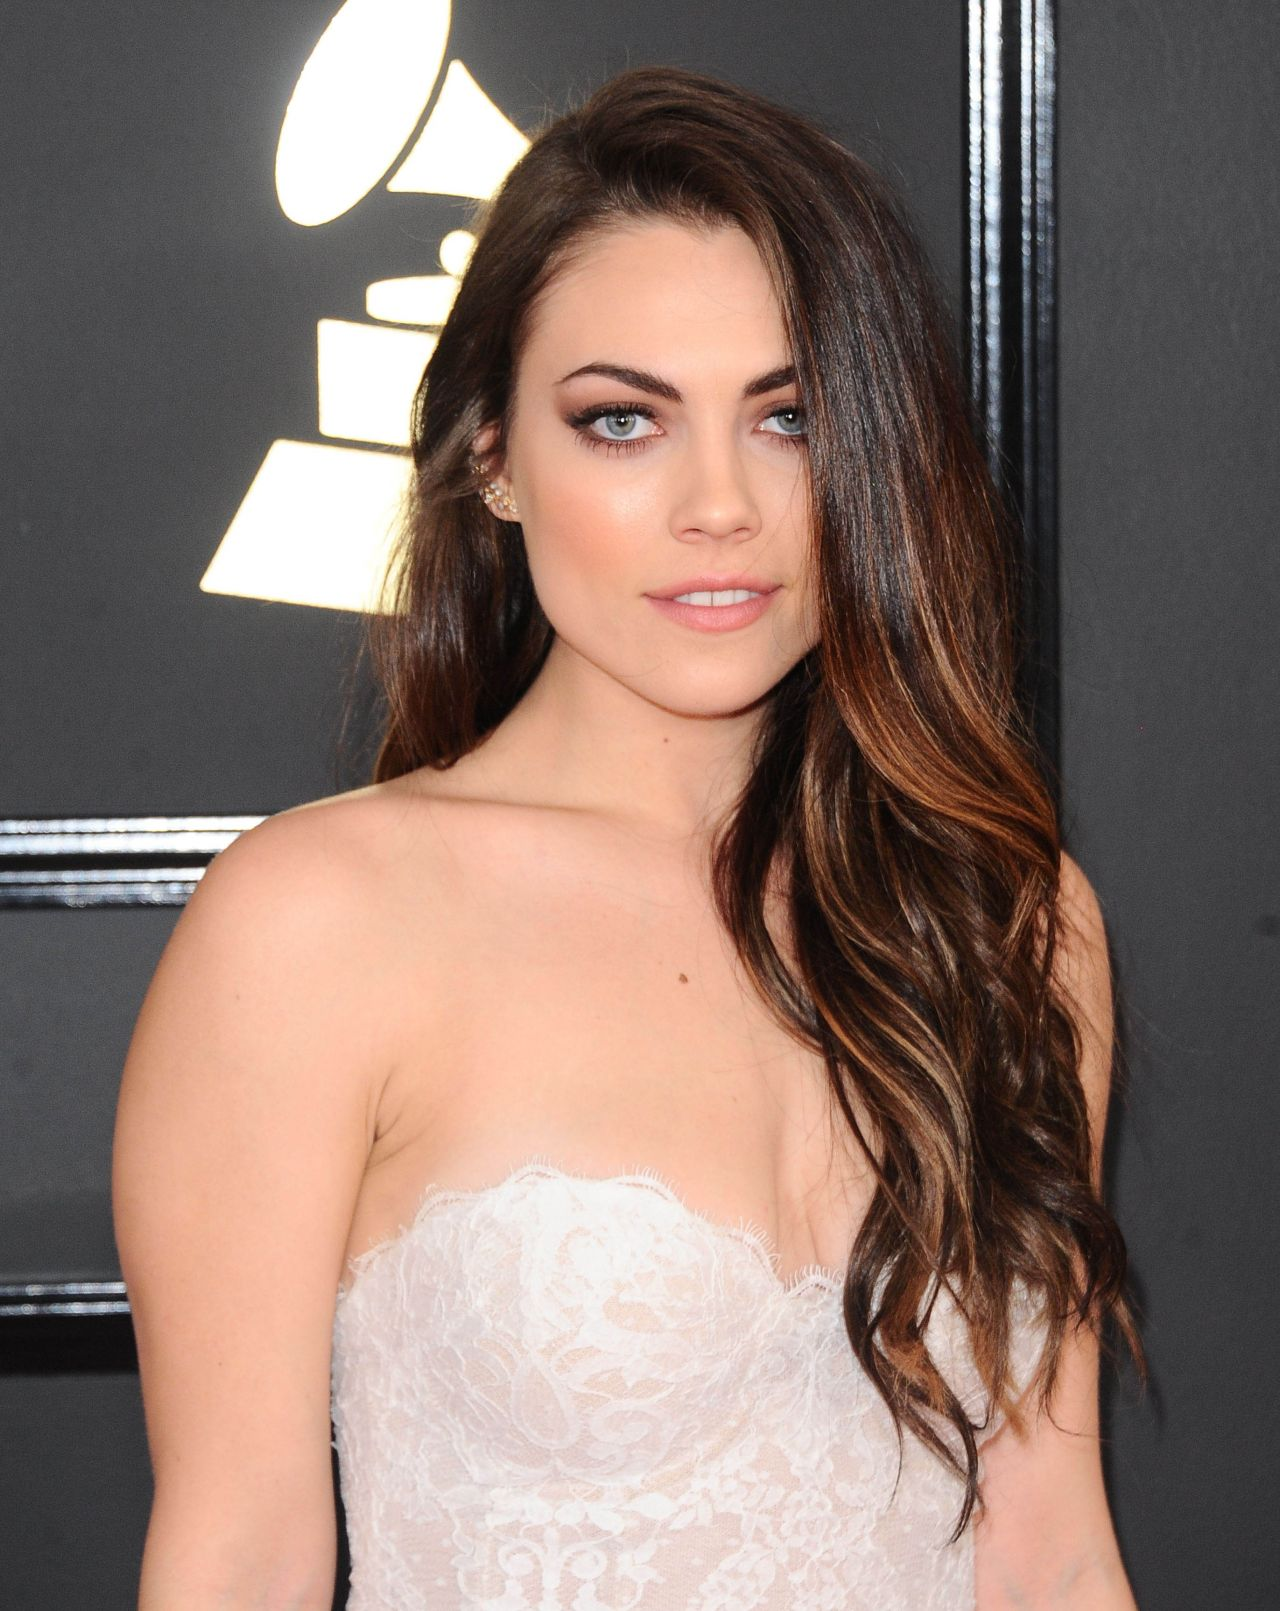 emily-weisband-on-red-carpet-grammy-awards-in-los-angeles-2-12-2017-1